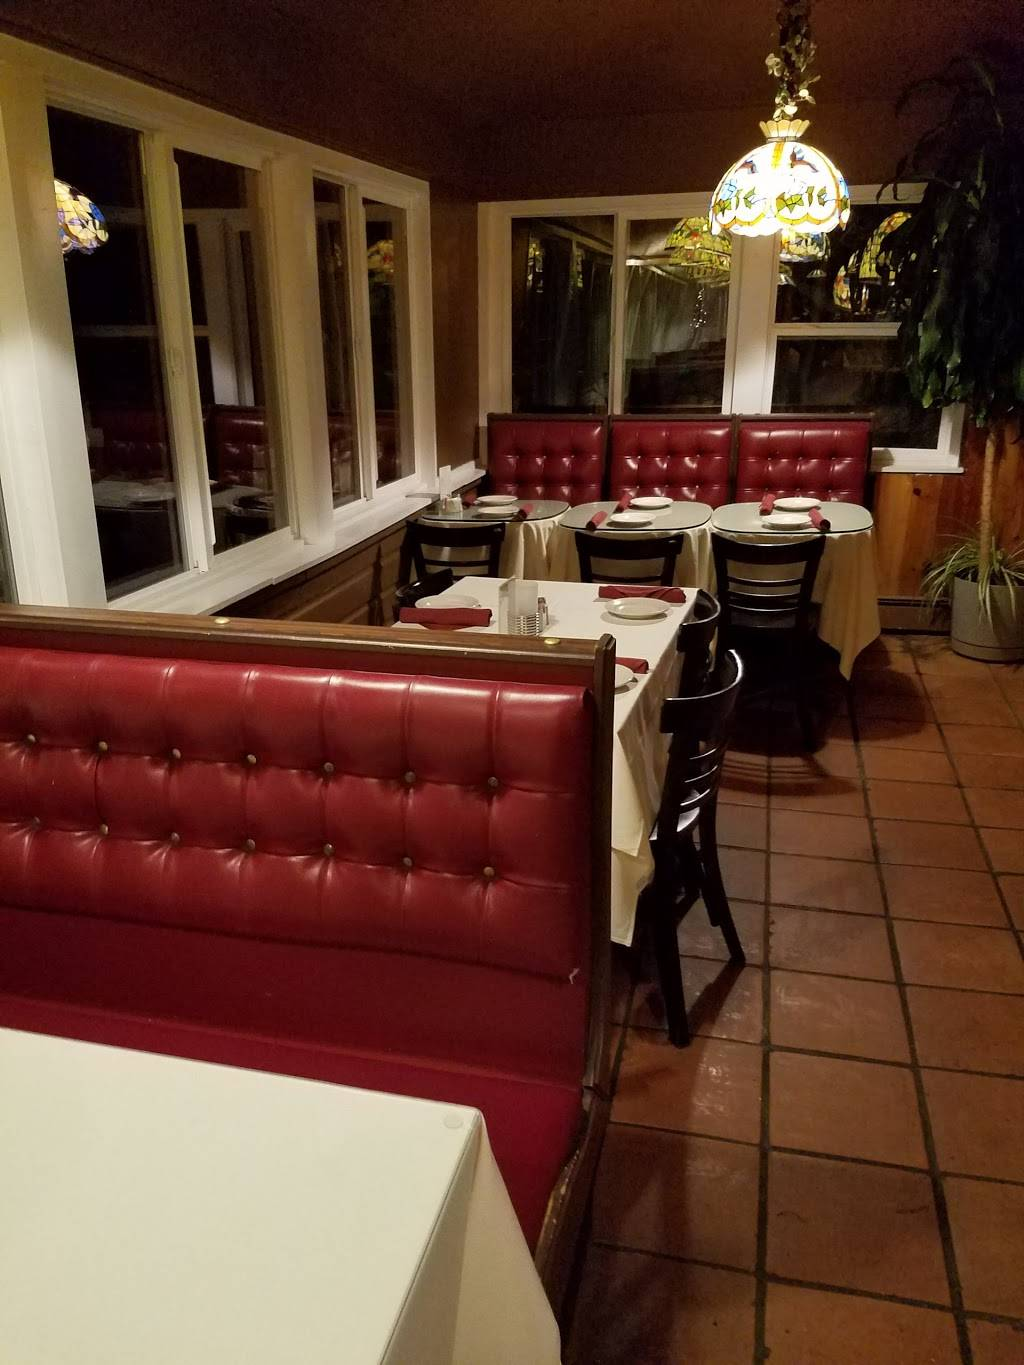 Anchor House Restaurant and Catering | restaurant | 2589 Boston Rd, Wilbraham, MA 01095, USA | 4135963055 OR +1 413-596-3055